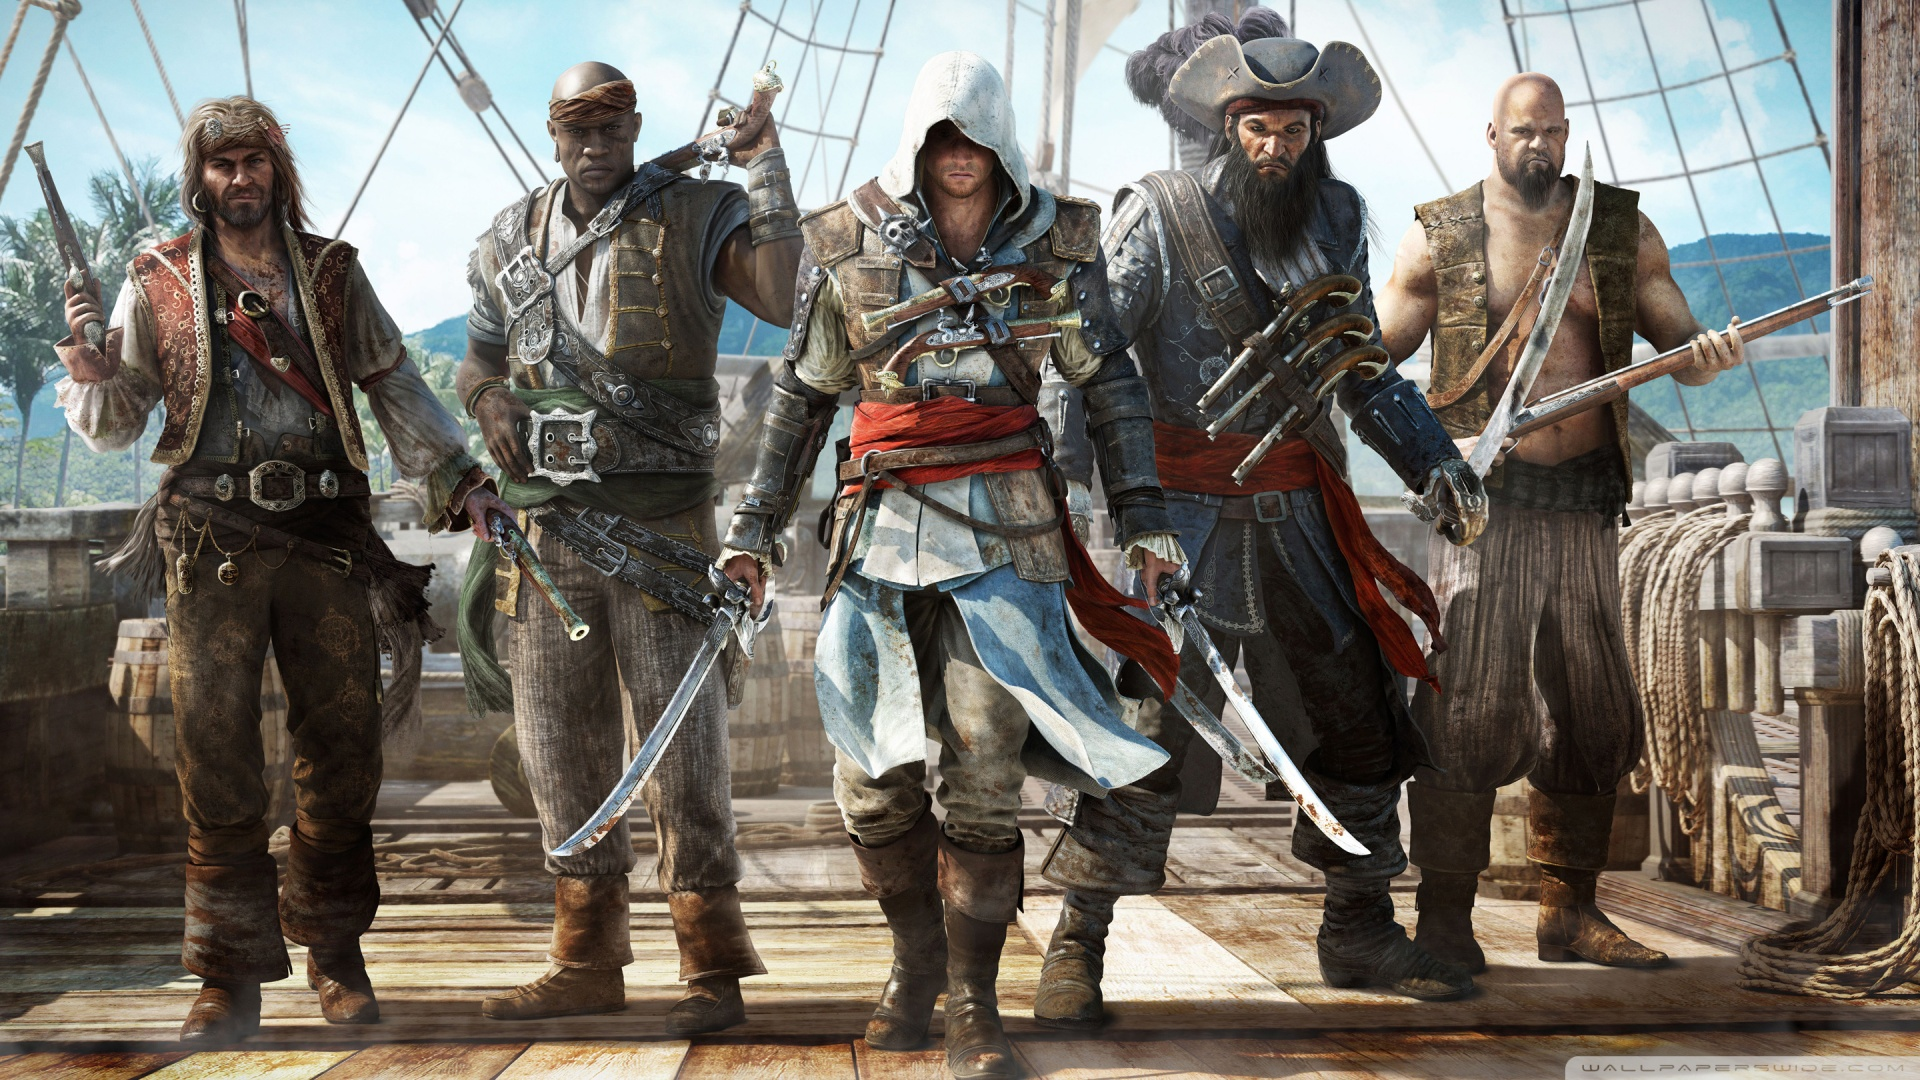 assassins_creed_iv_black_flag_7-wallpaper-1920x1080